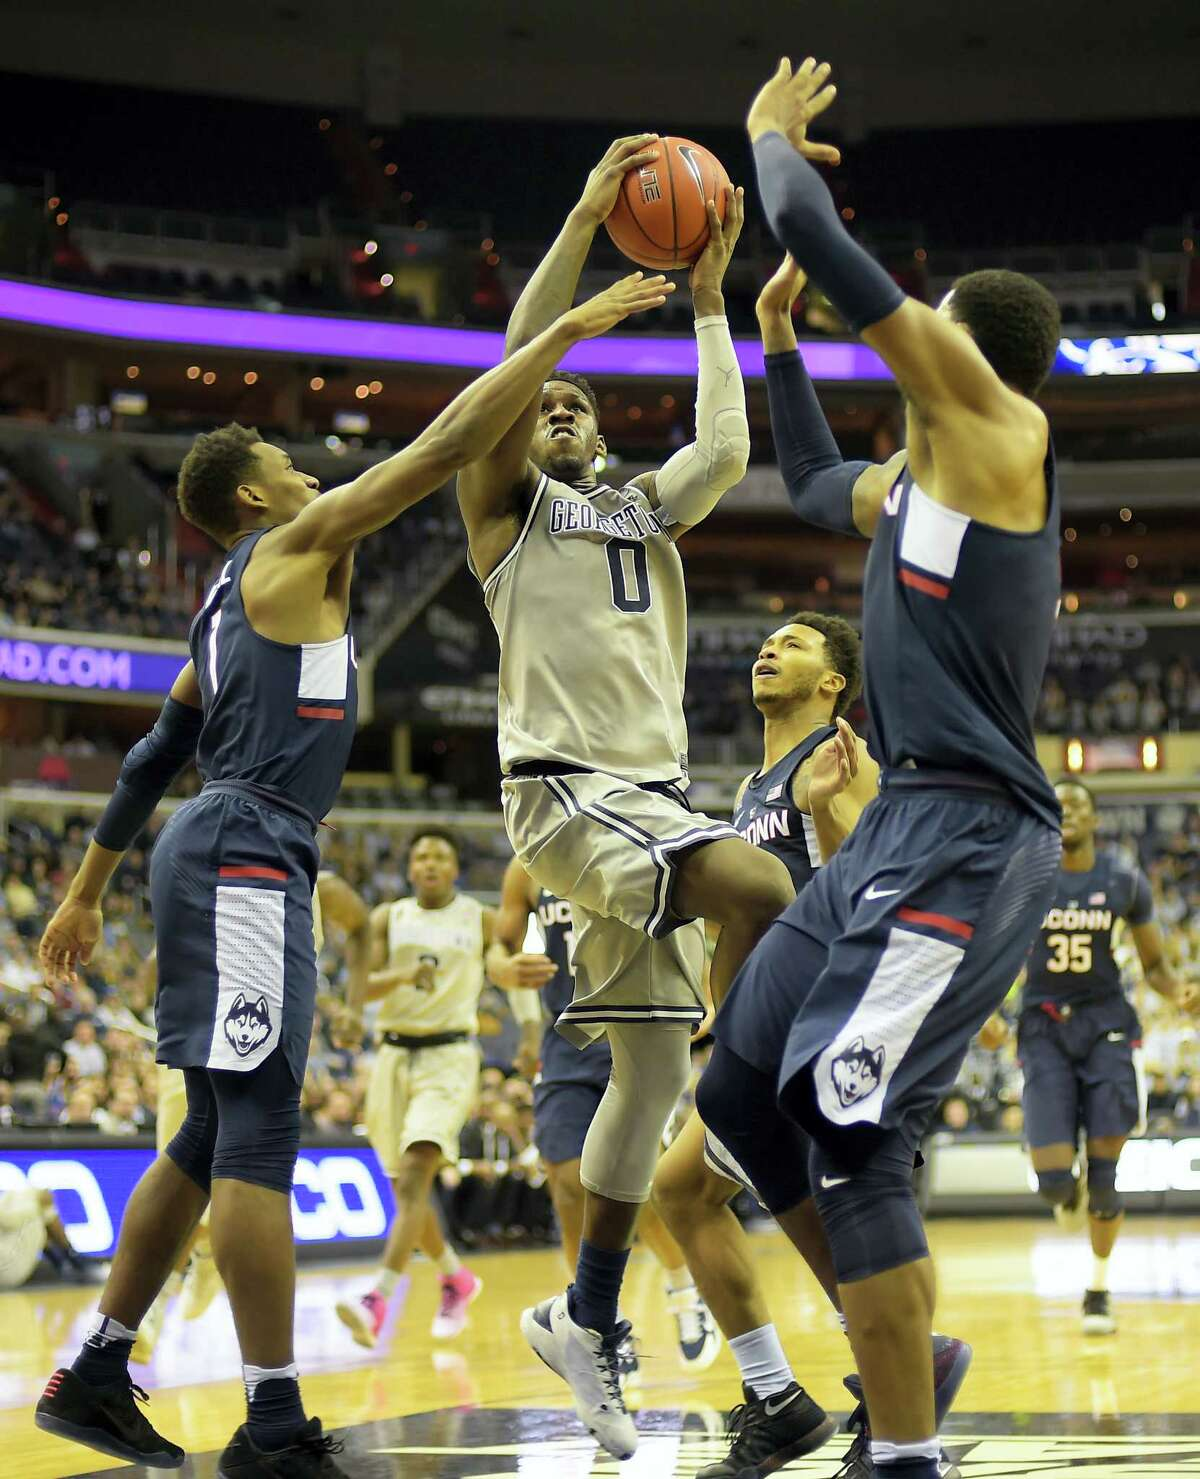 Georgetown's' L.J. Peak, center, drives through several UConn defenders during Saturday's game.